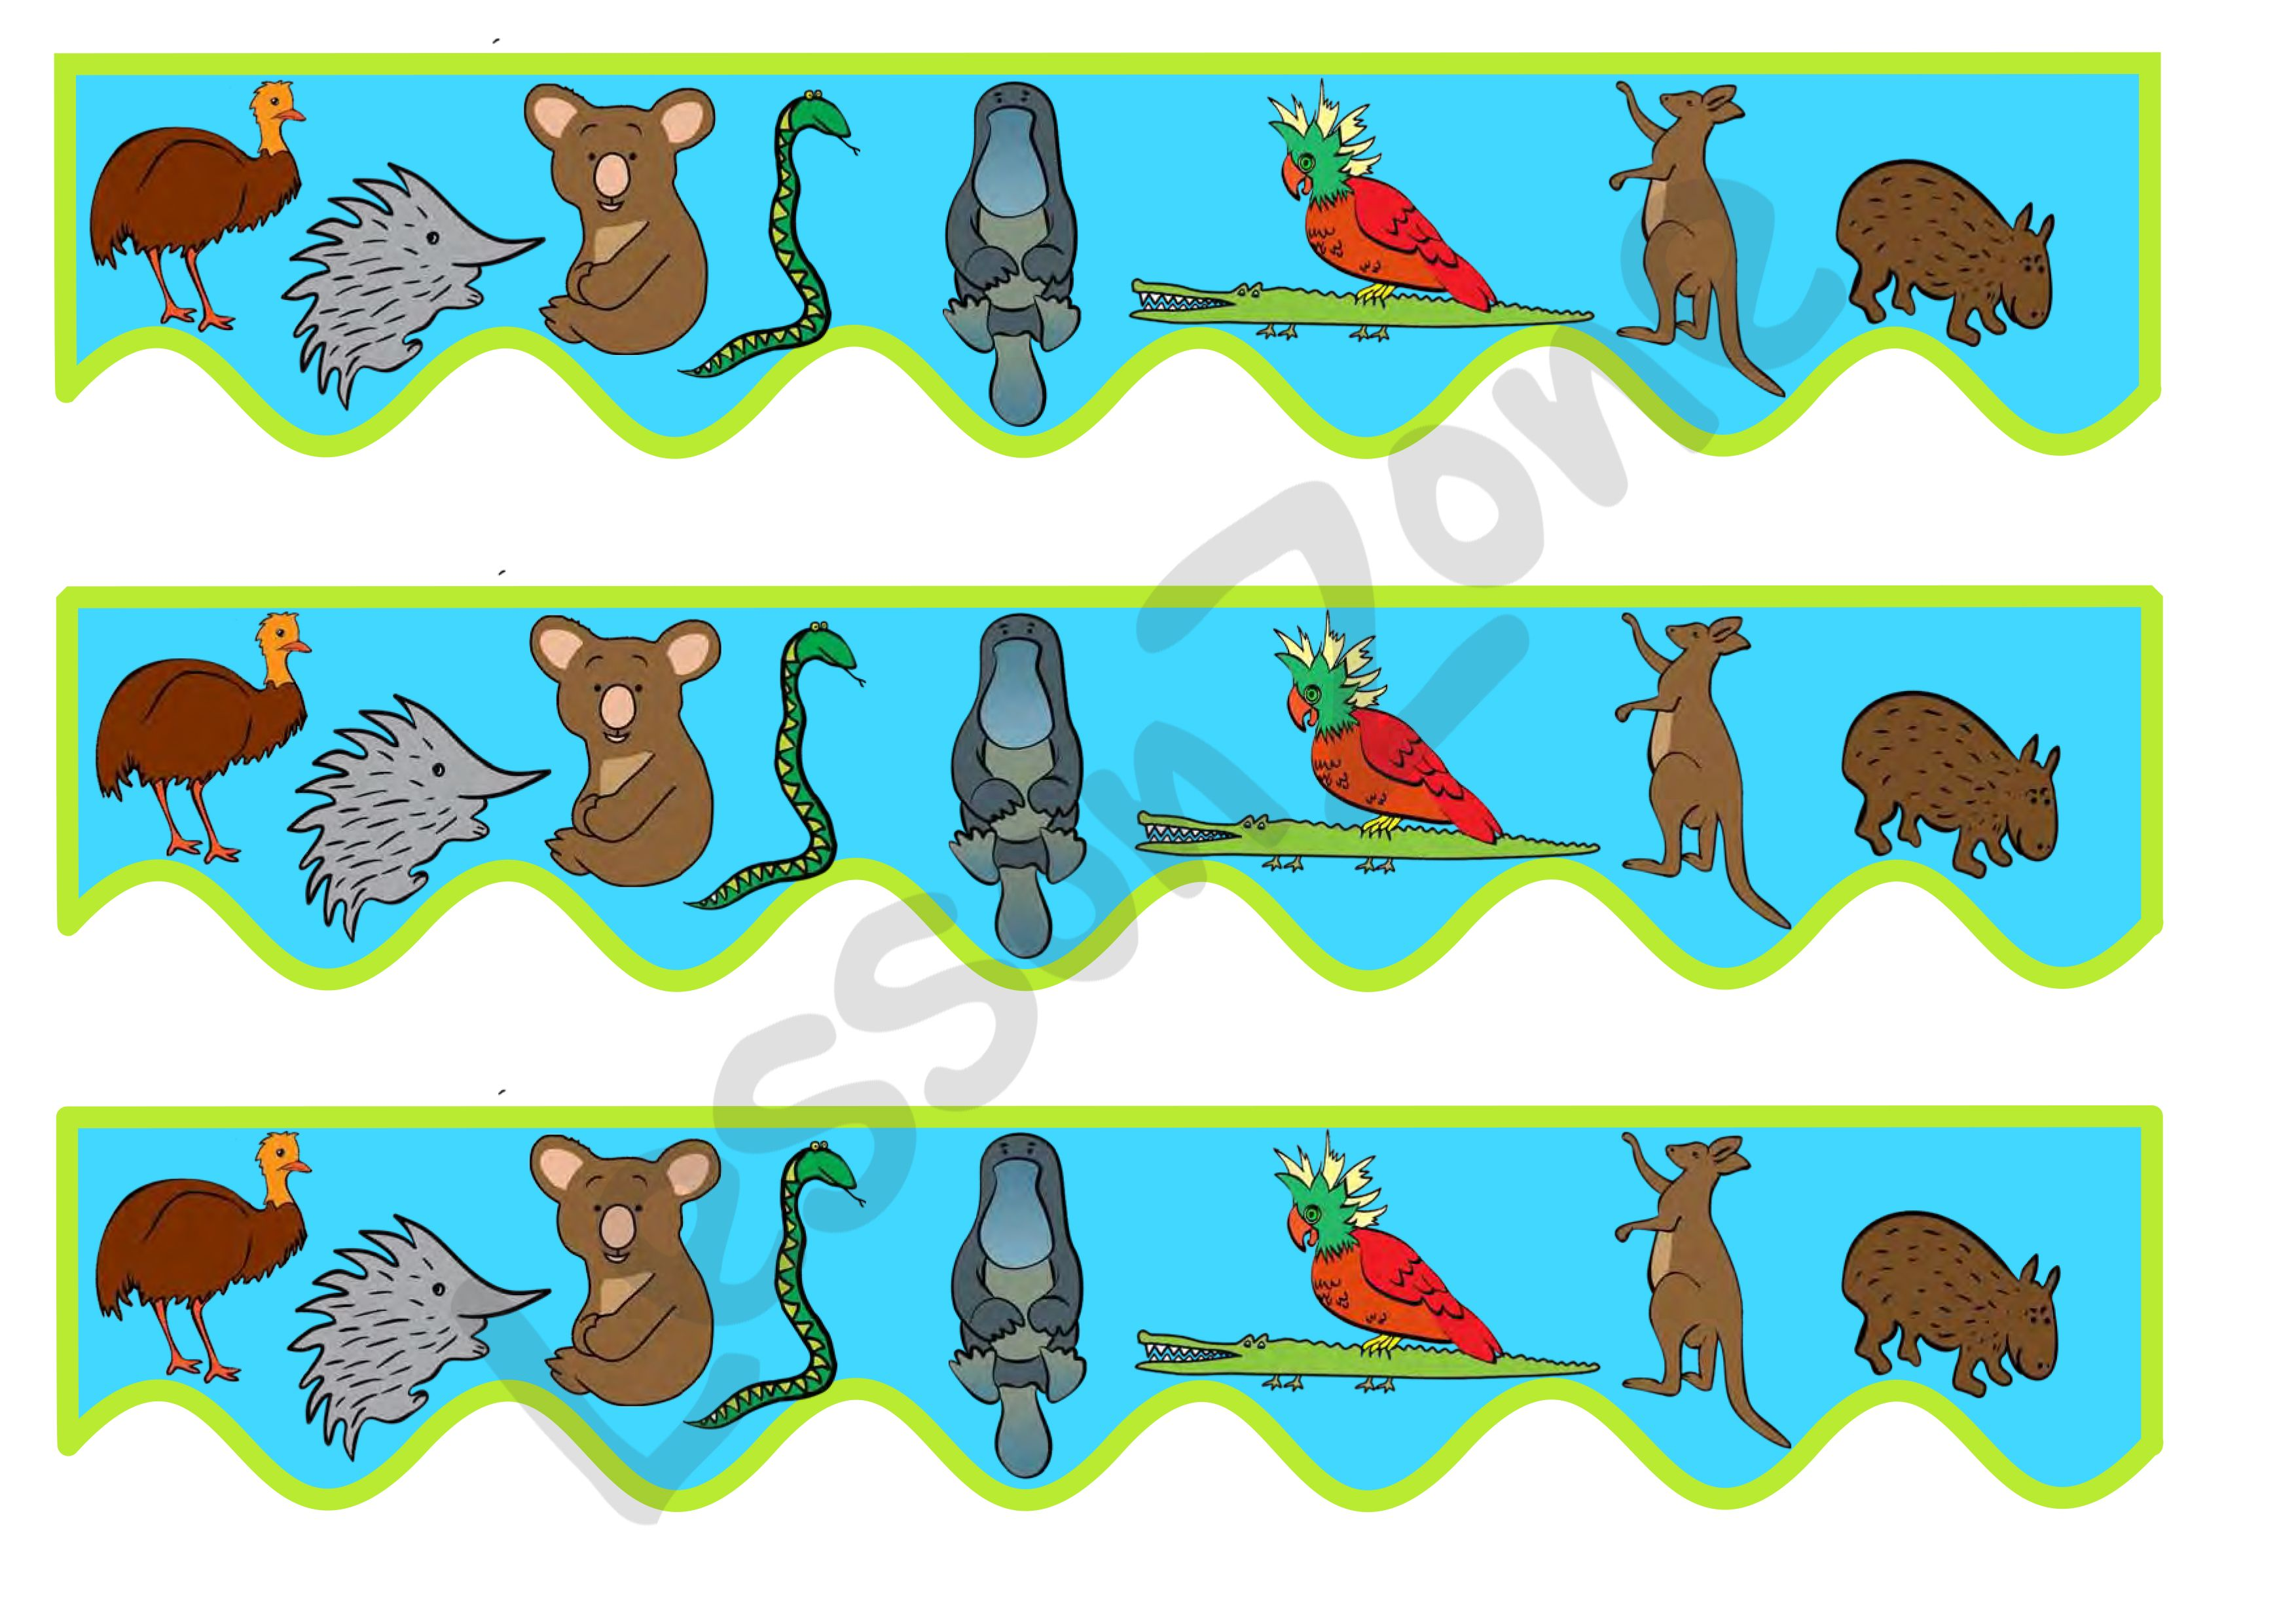 Decorate Your Classroom With Australian Animal Themed Bulletin Board Trimmers For The 4 Page Download V Australian Animals Kids Craft Work Classroom Displays